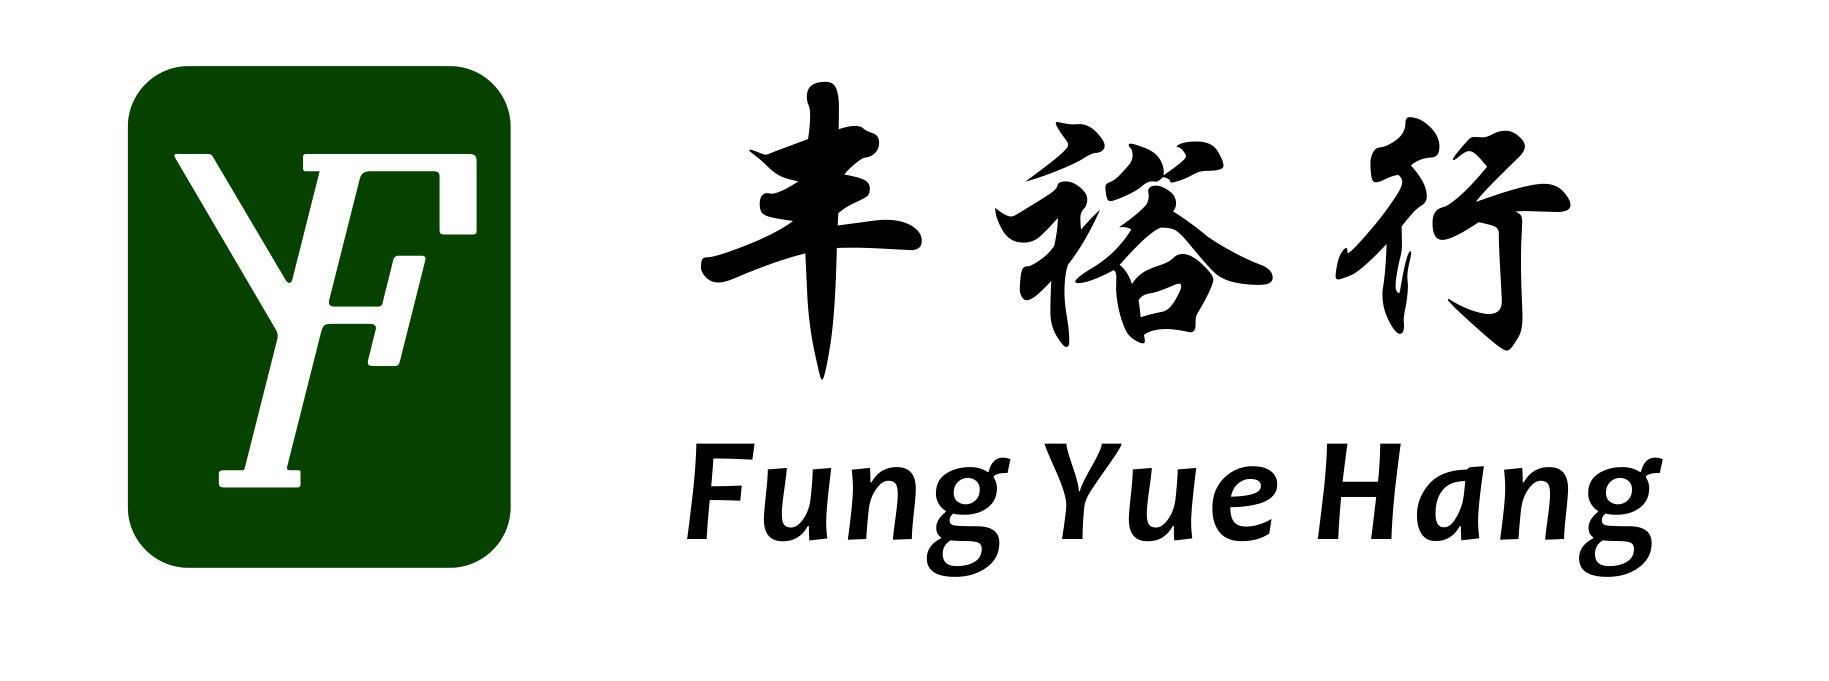 Guangzhou Fung Yue Hang Trading Co., Ltd